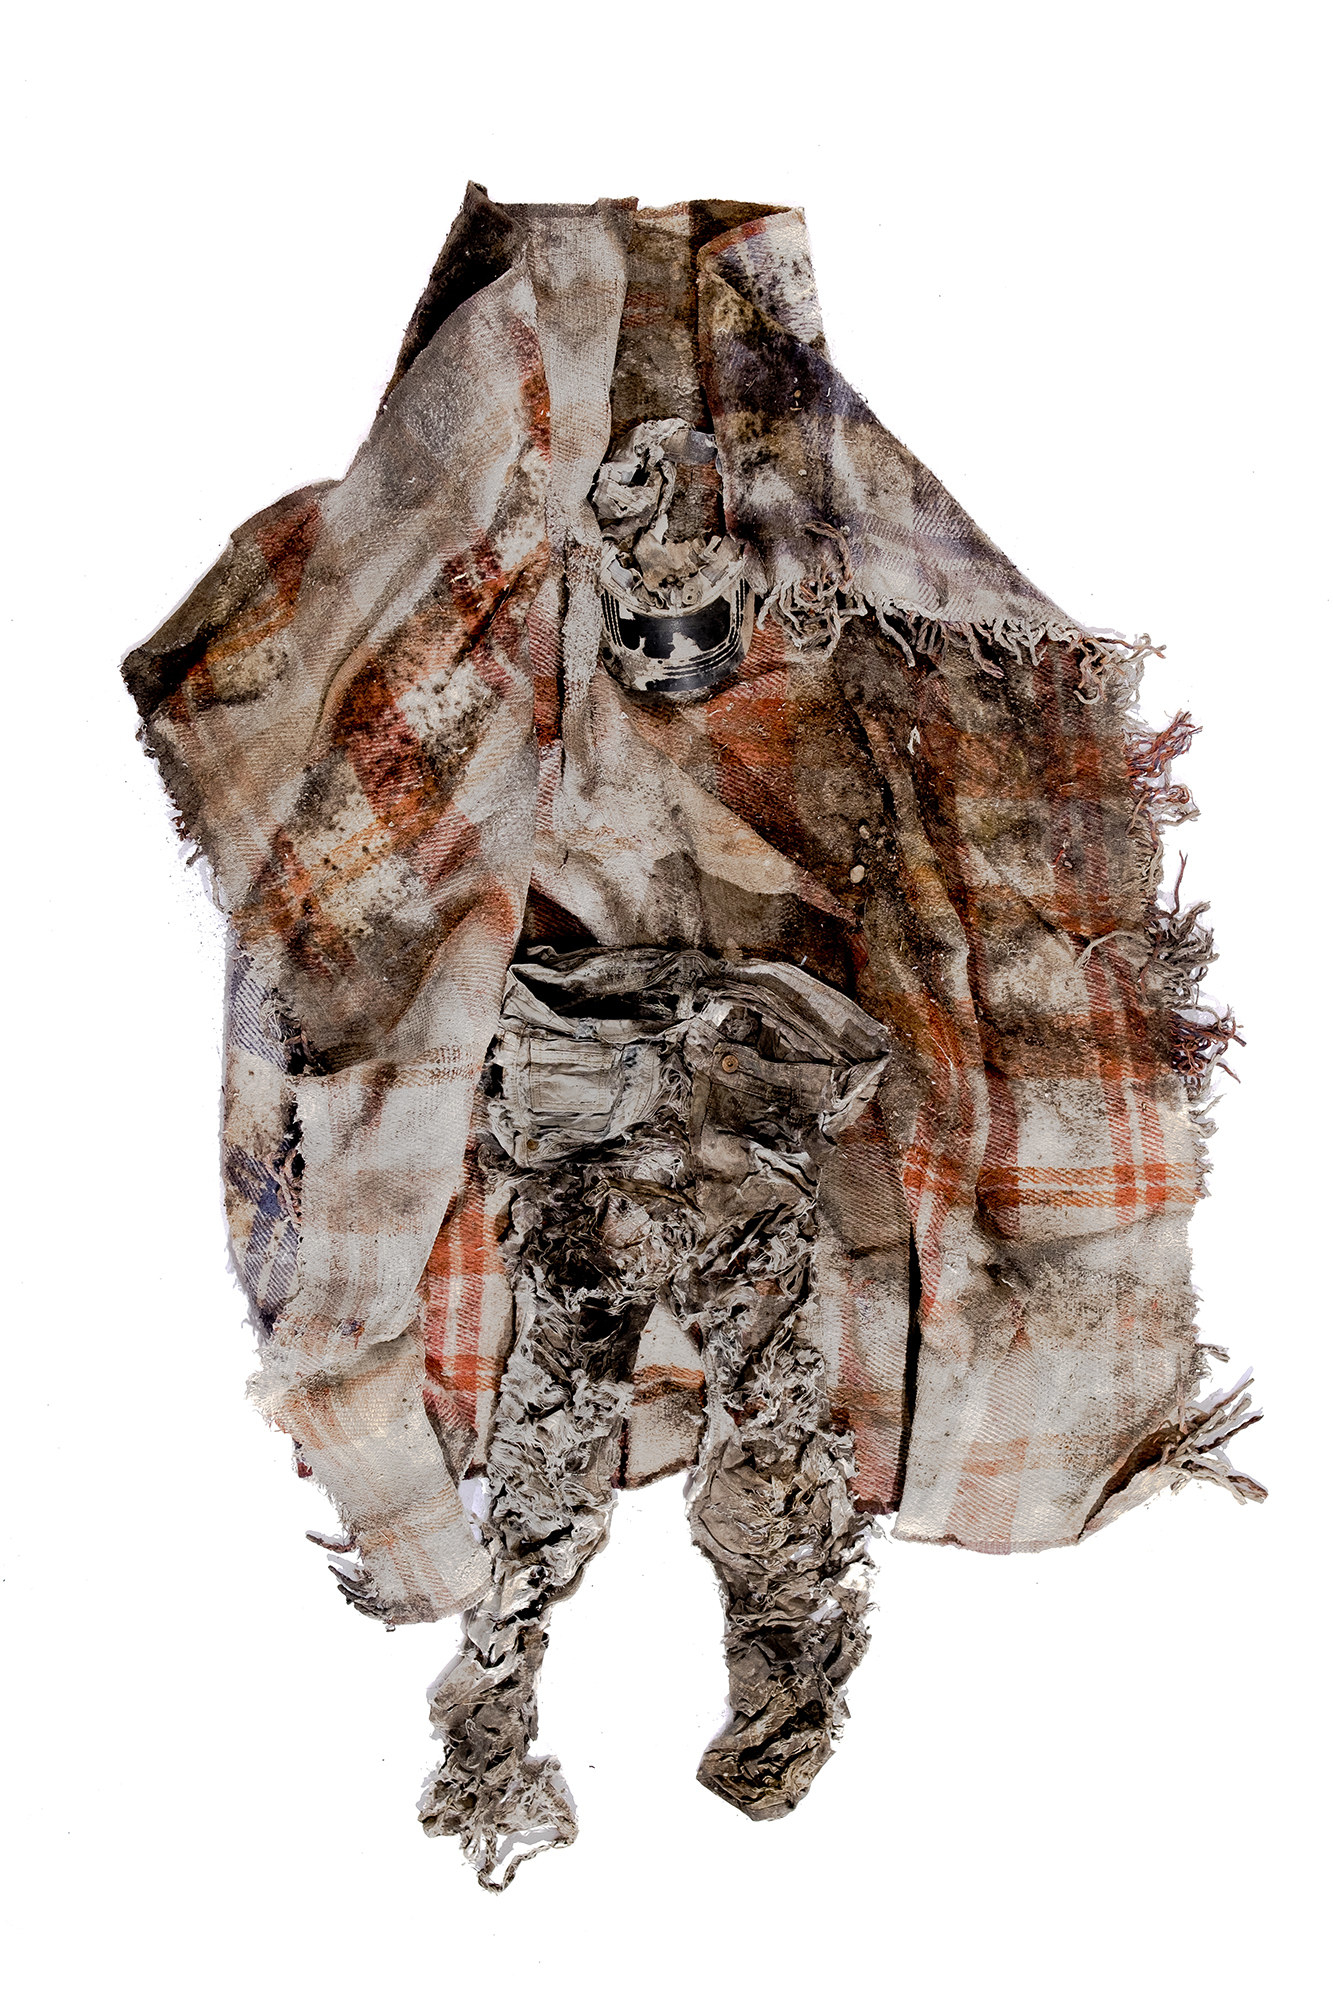 A torn, stained, blanket and pieces of clothing